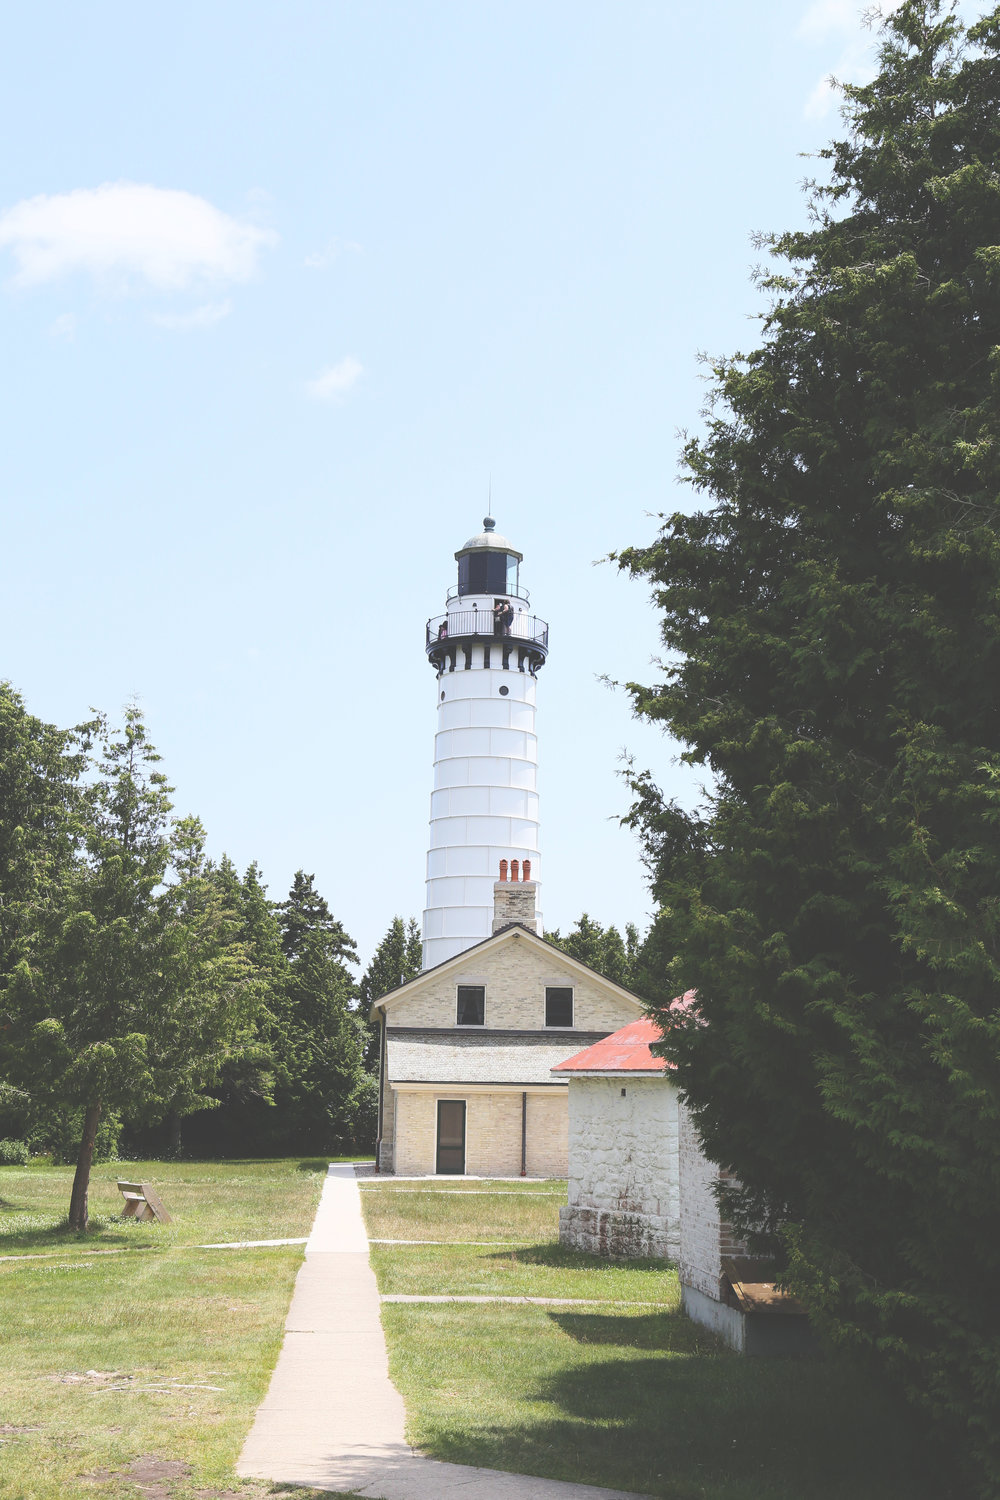 Cana Island Lighthouse on Cana Island is one of the few lighthouses still functioning on Lake Michigan, and still retains its original lens.